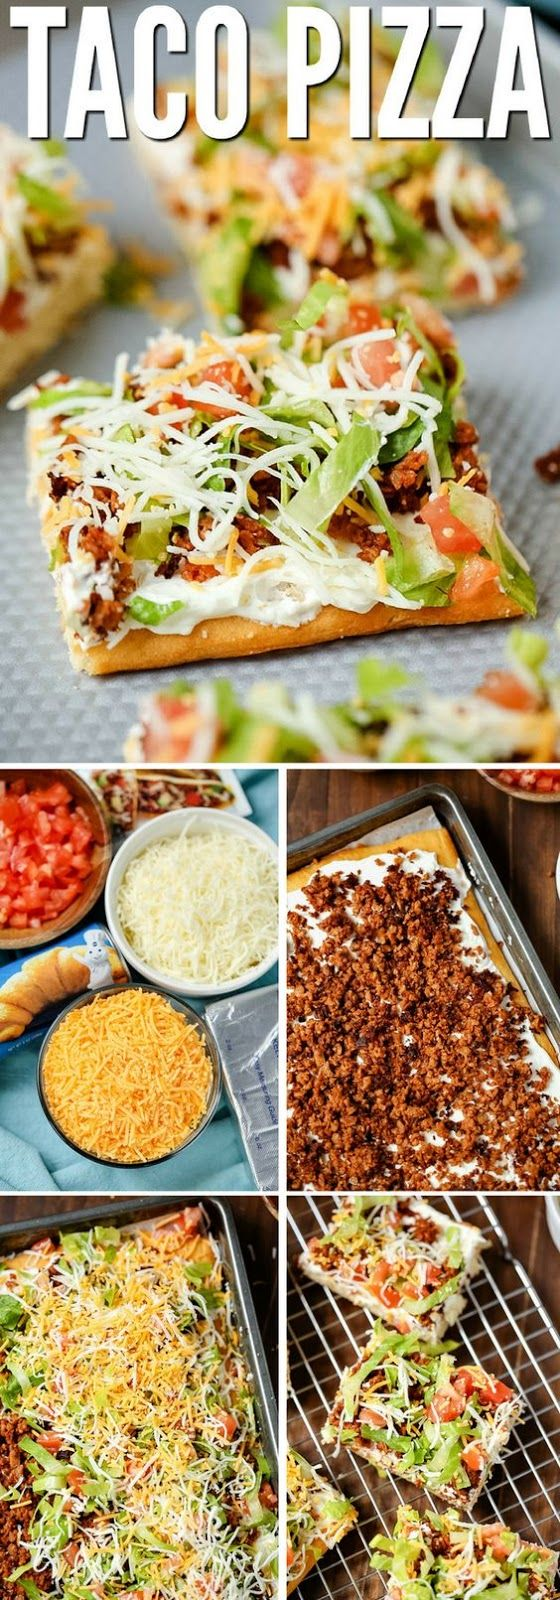 Ingredients 2 tubes (8 oz each) refrigerated crescent rolls 1 package (8 oz) cream cheese, softened 1 cup (8 oz) sour cream 1 p...